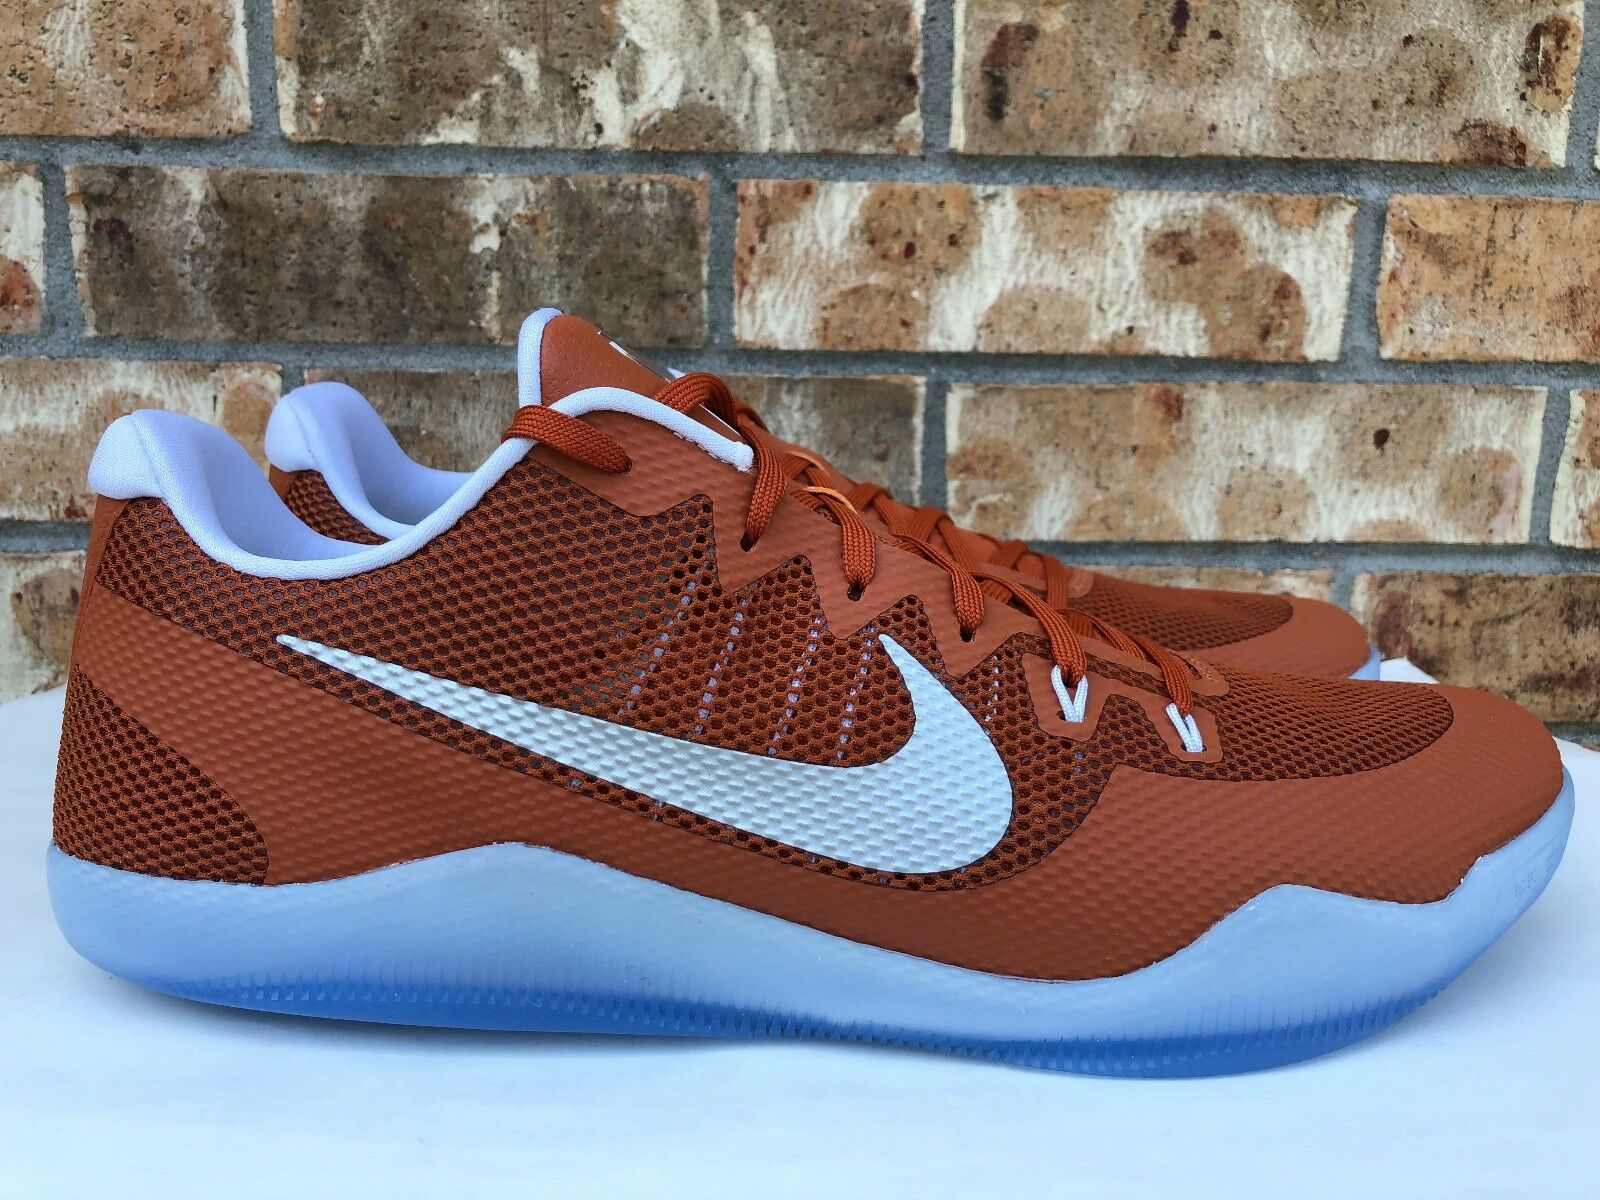 Men's Nike Kobe XI 11 TB Texas Longhorns Desert Burnt Orange Size 18 856485-882